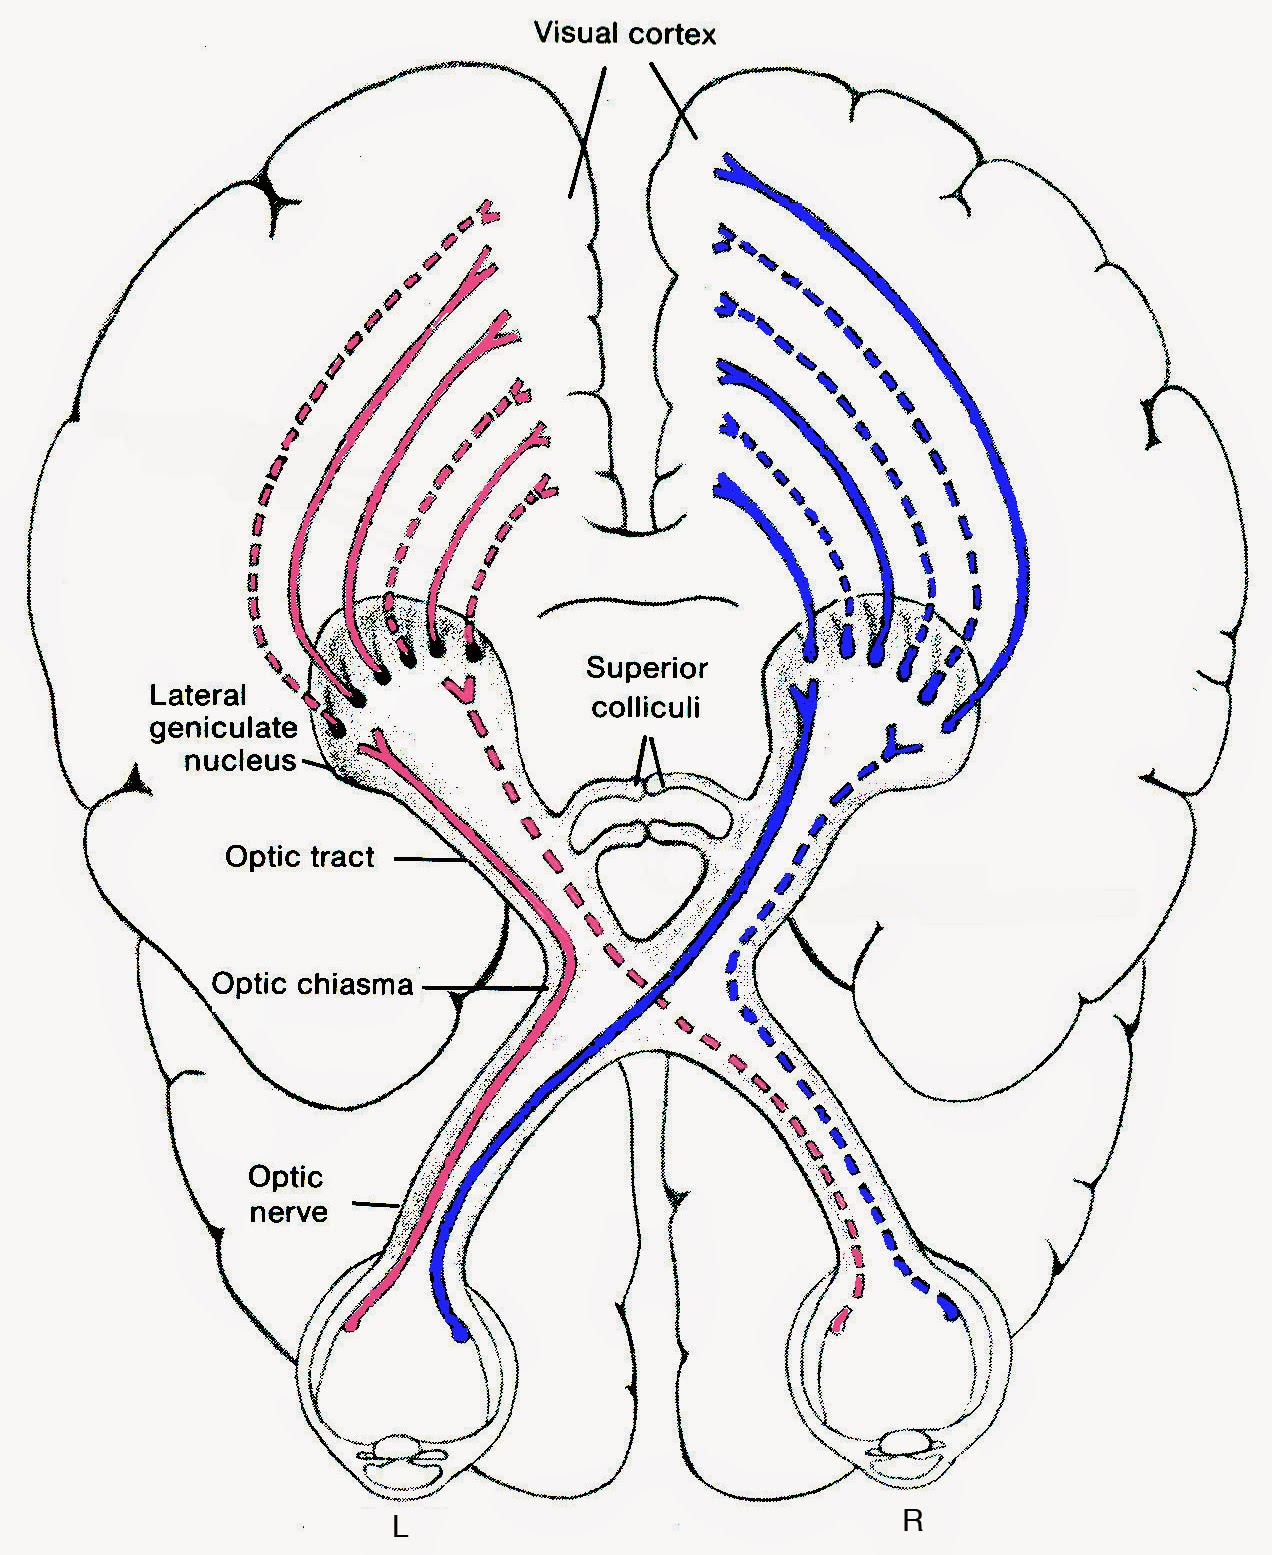 Optic Nerve Diagram Simple Question About Wiring Filesimple Of Human Eye Multilingualsvg Wikipedia The Deniz Yuret S Homepage On Emergence Visual Cortex Brain Location